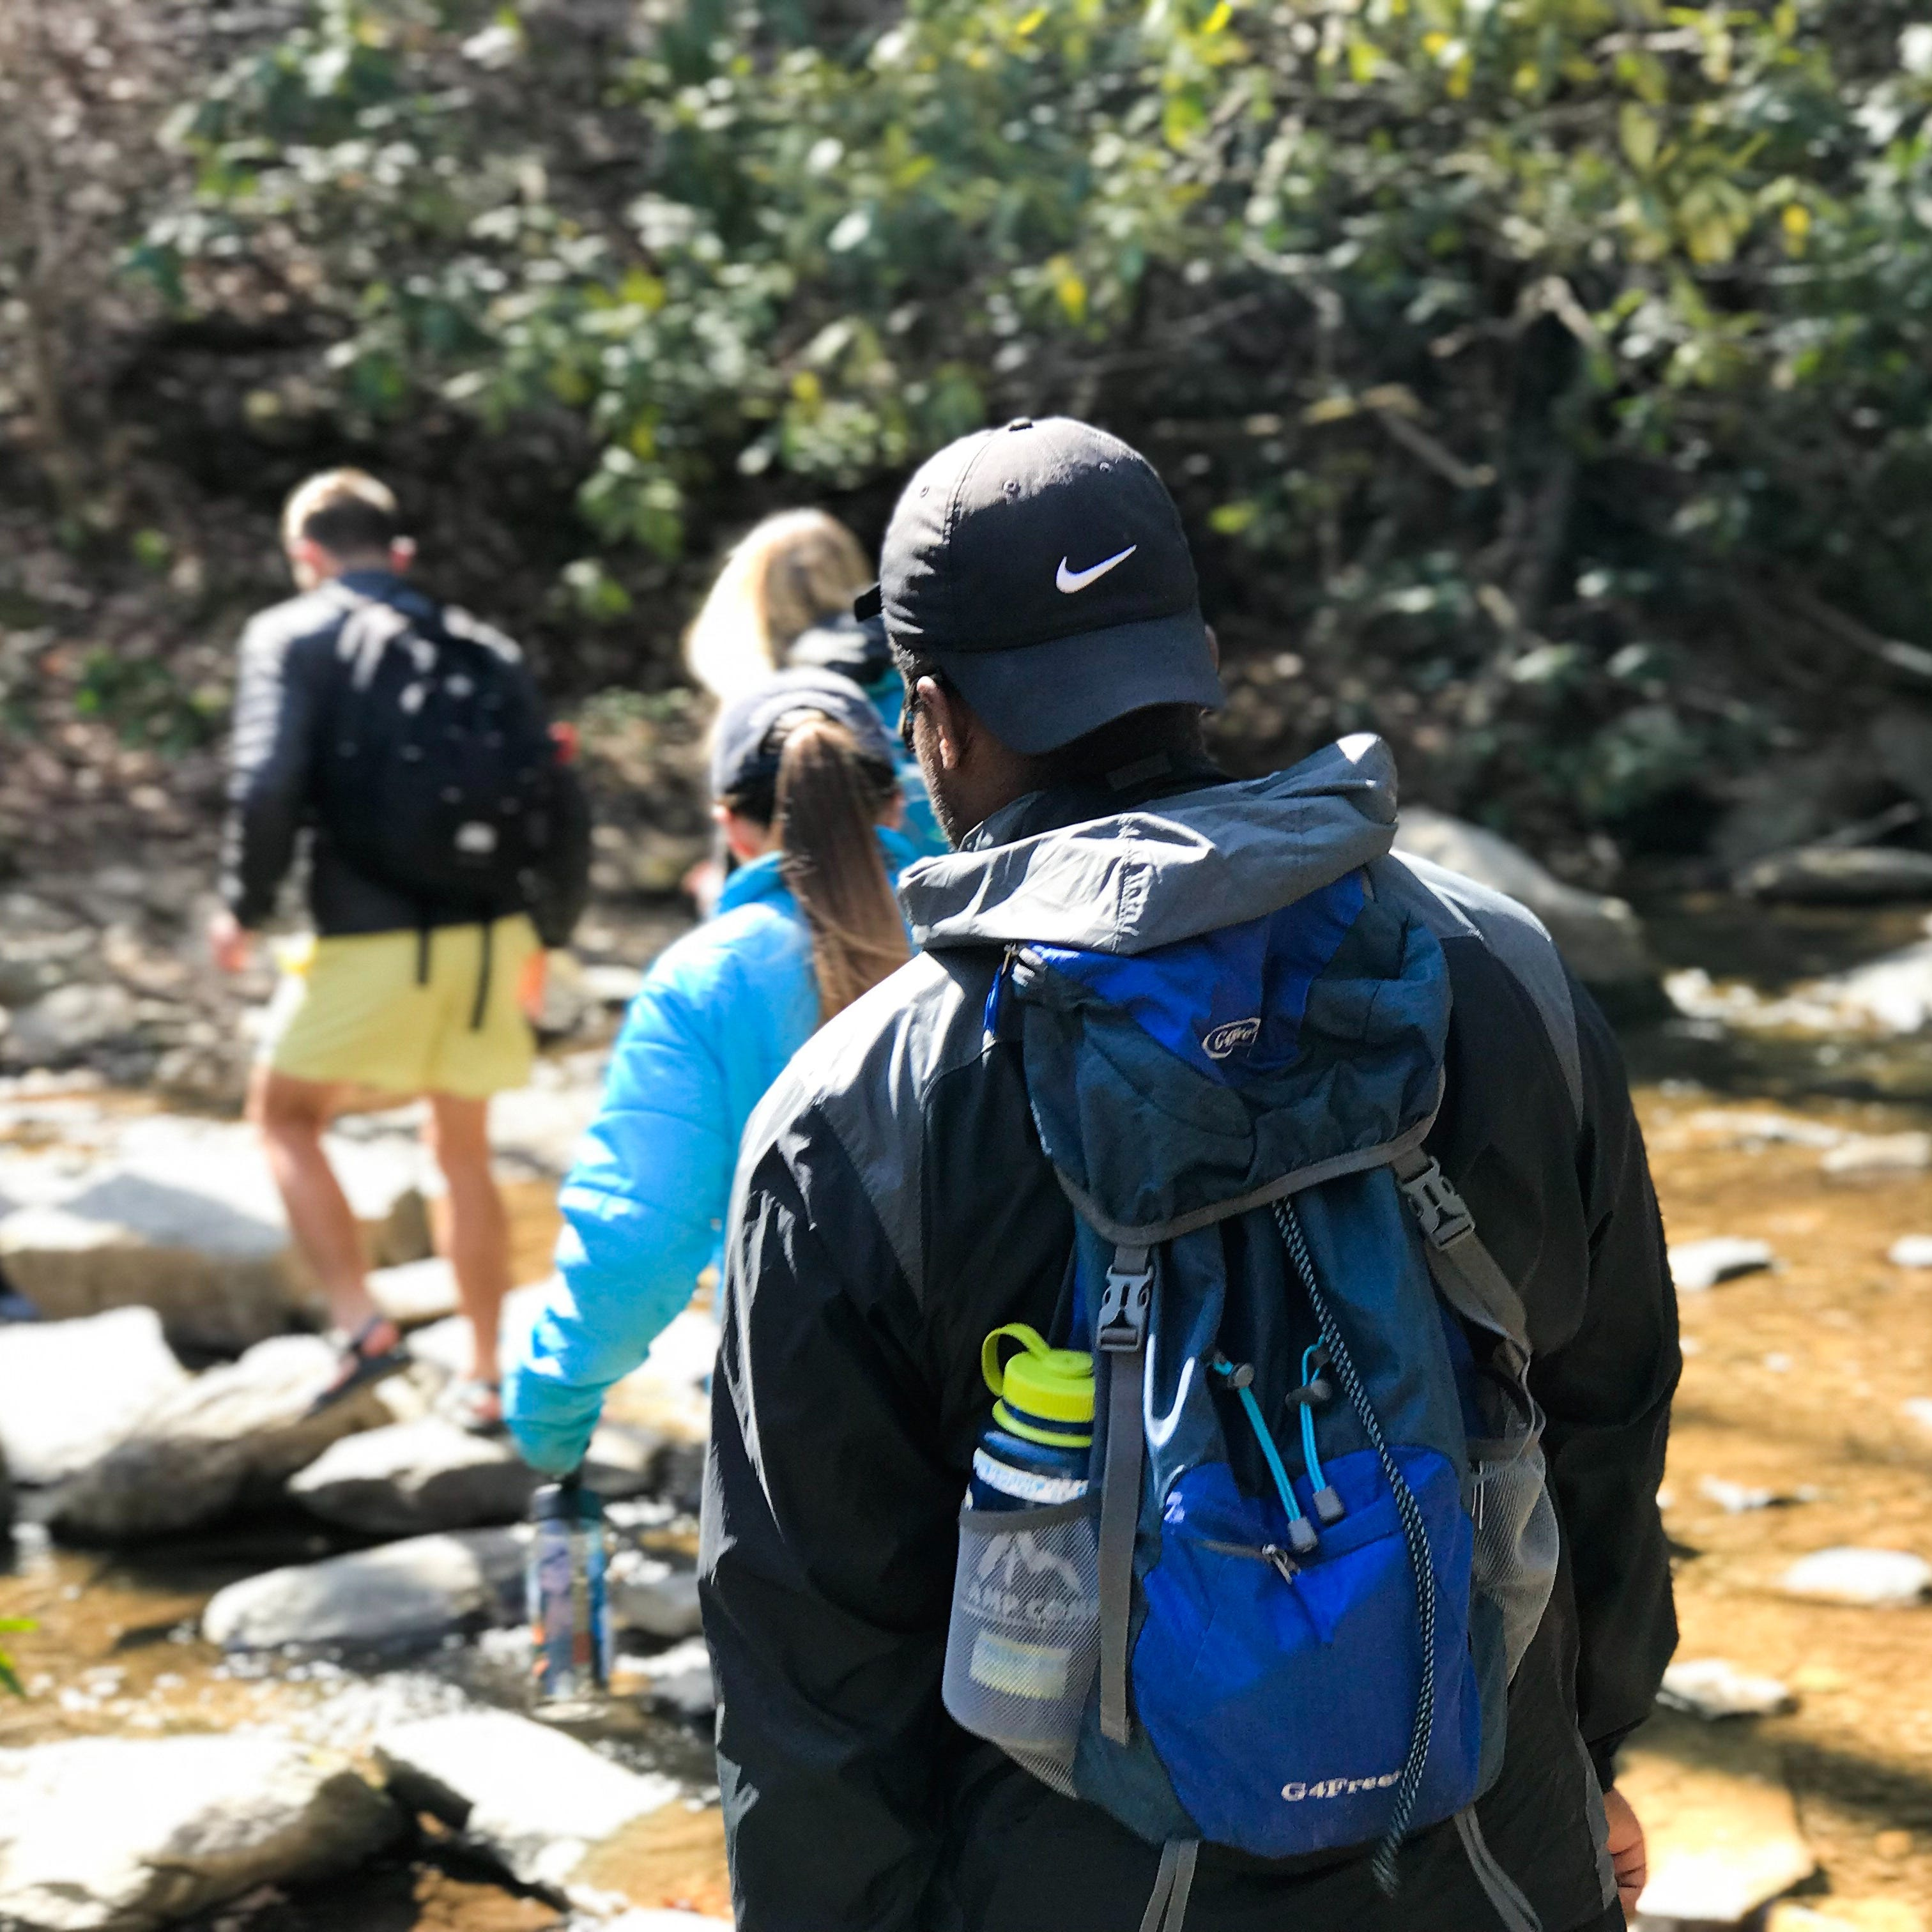 Want to hike? Not sure where or how? Buncombe County Recreation can help